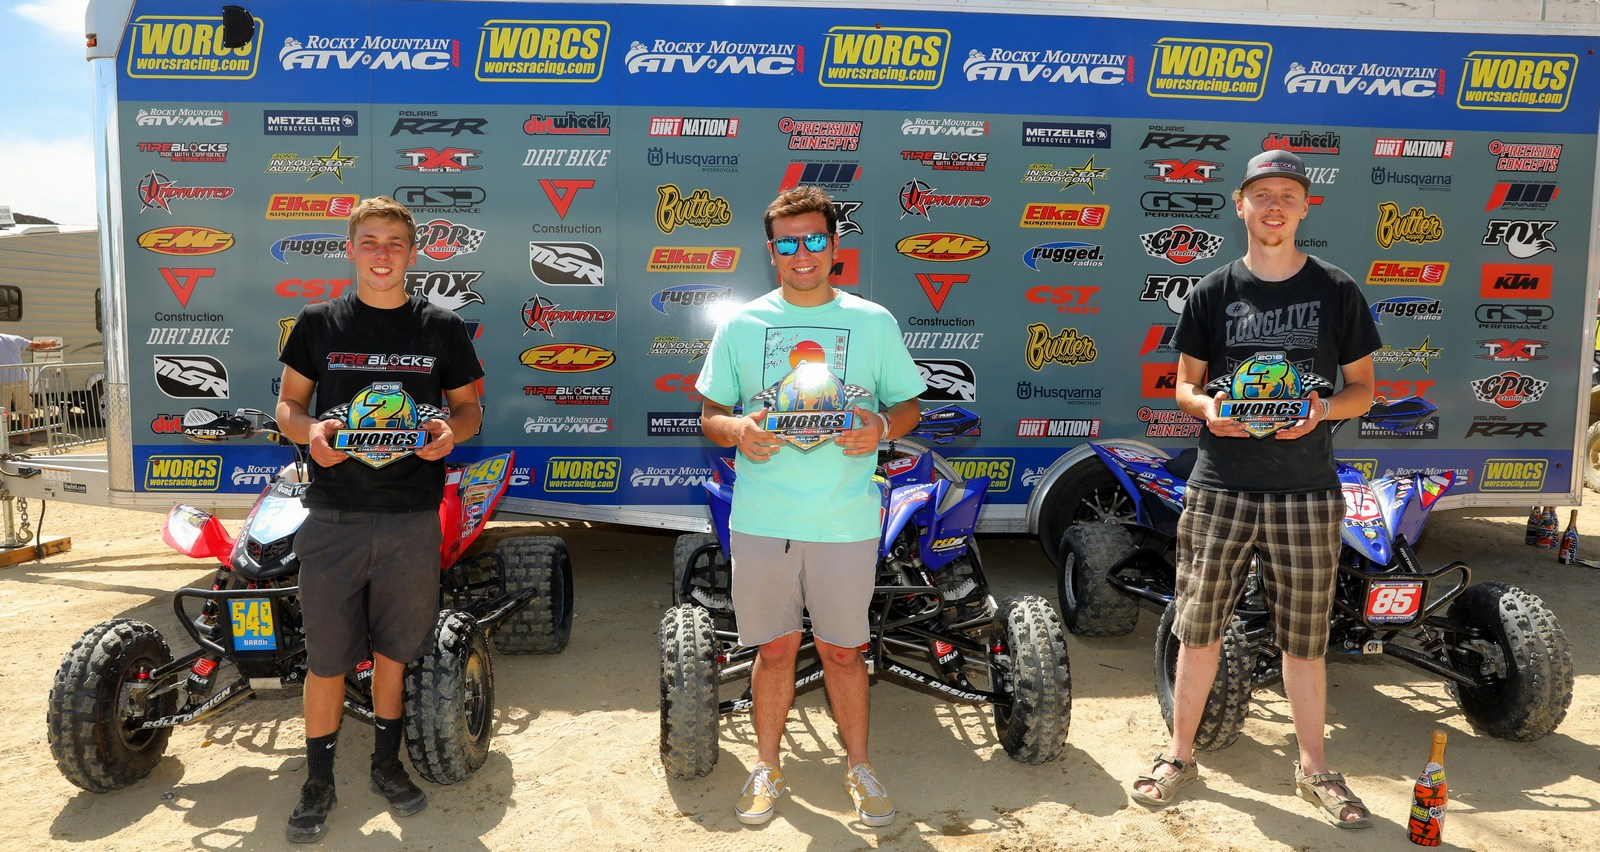 2019-06-podium-atv-proam-worcs-racing